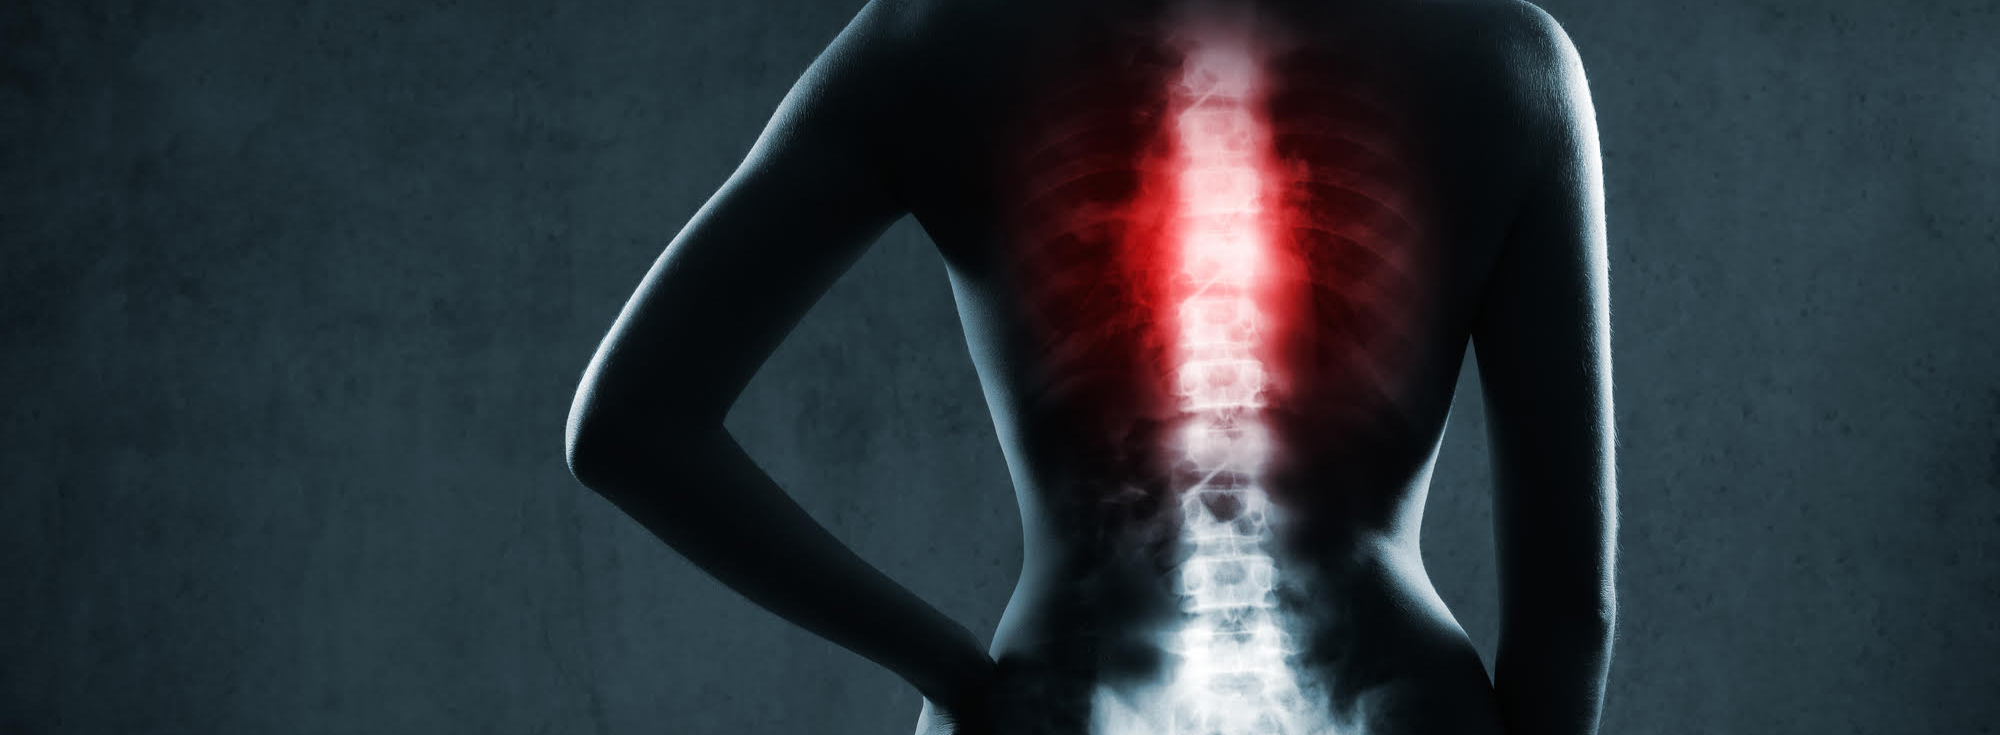 Spinal Disorder, physical therapy for spine surgery